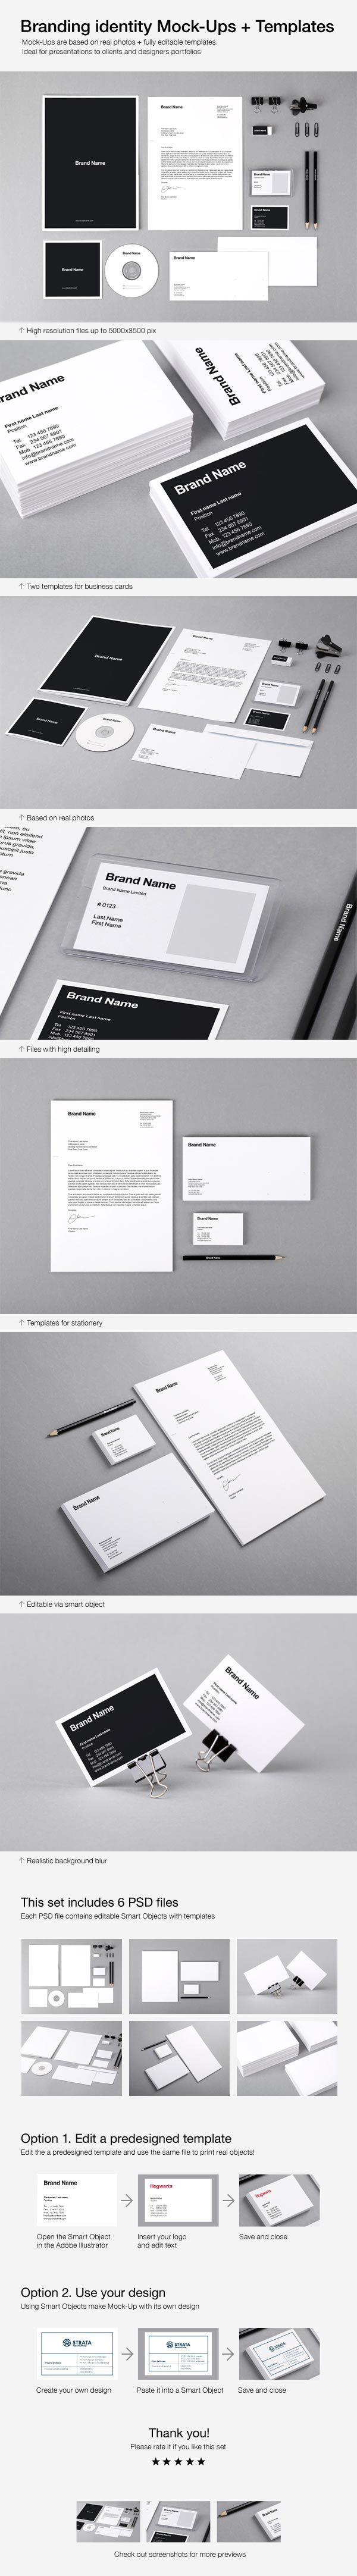 Download Free Branding Identity Mock-Ups and Templates